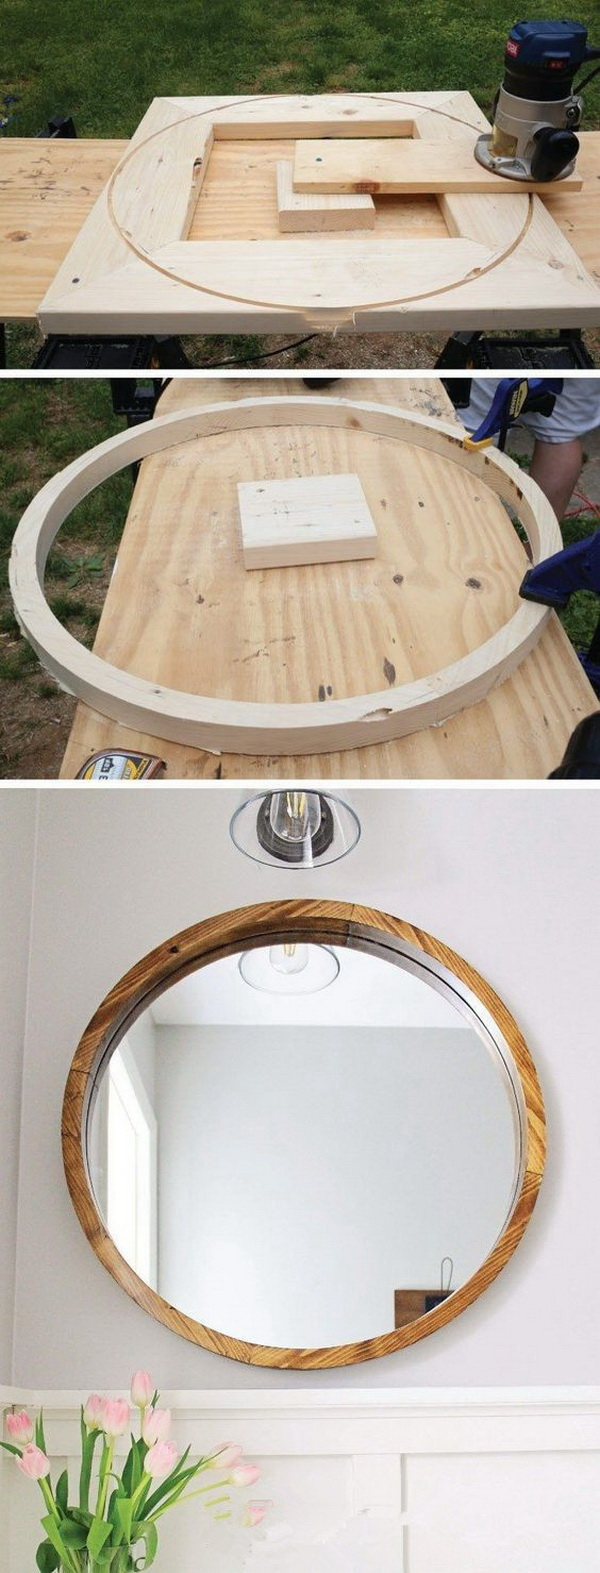 DIY Round Wood Framed Mirror.